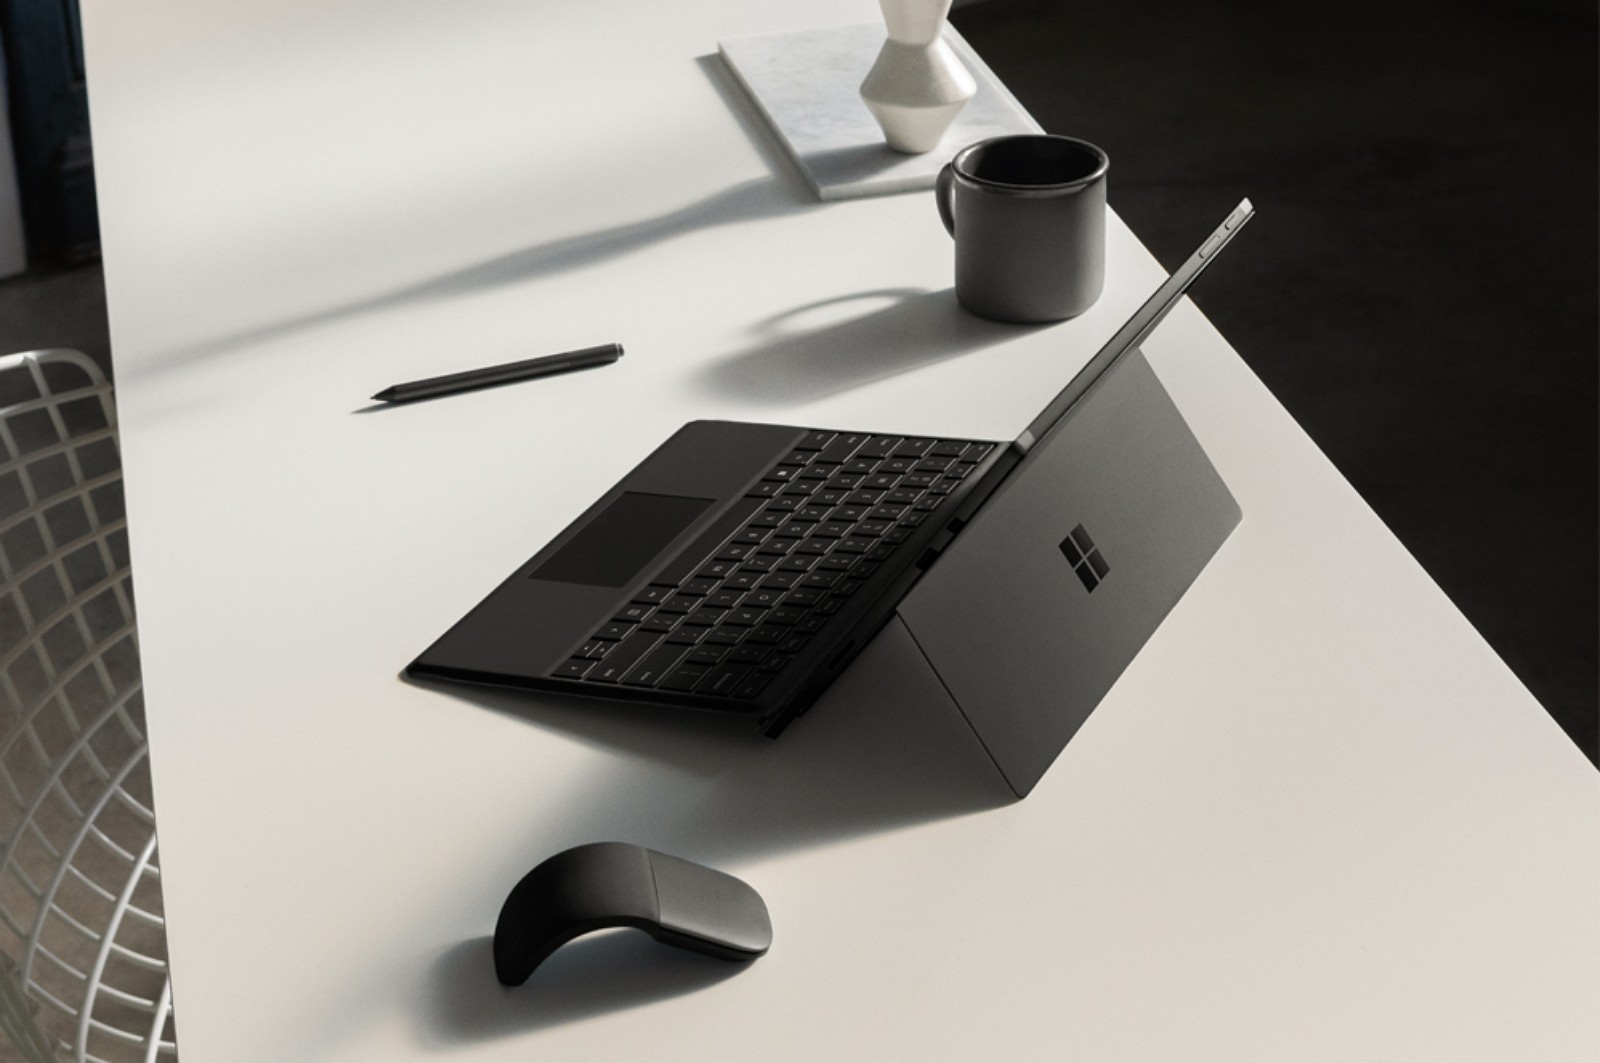 Surface Pro 6 in black